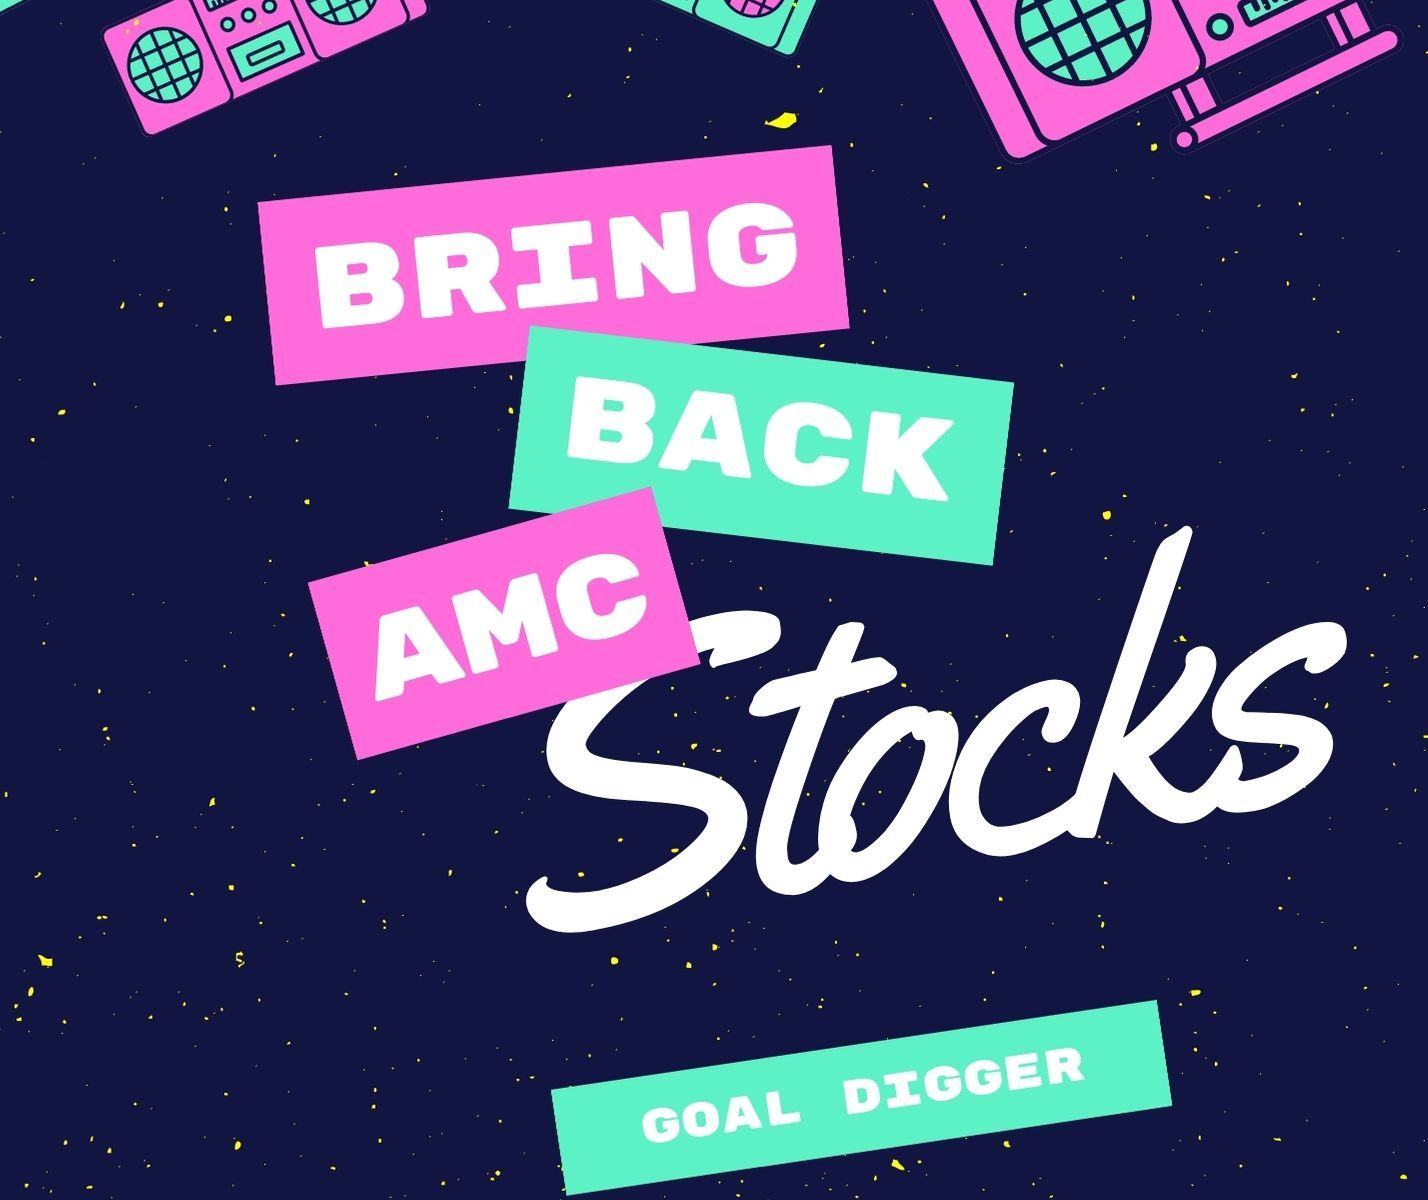 AMC stocks wallstreetsbests class action lawsuits amazing gamestop winners bets betting gambling generation z hedge funds big banks